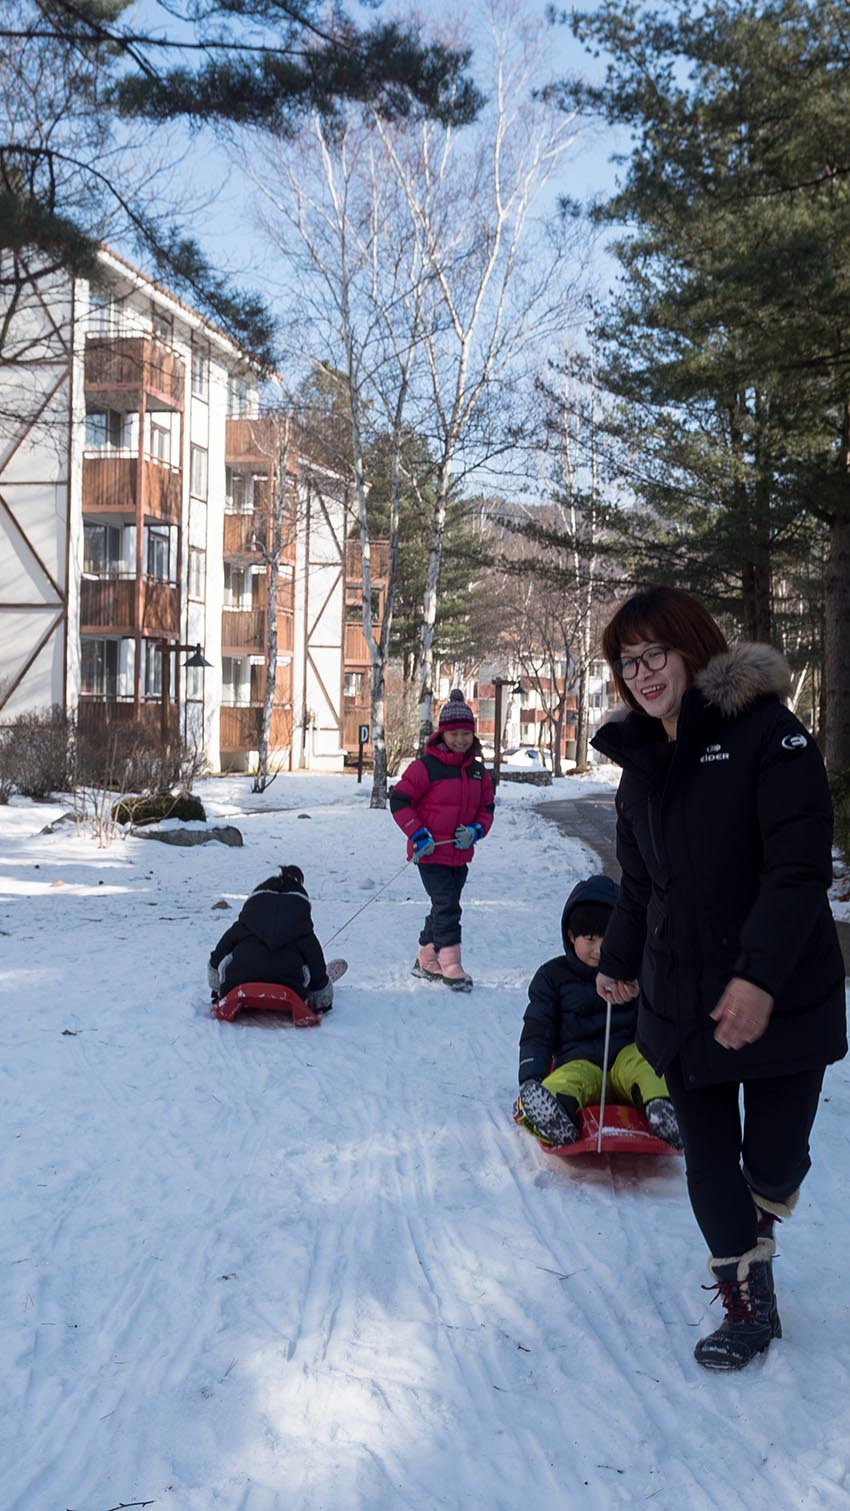 A family plays with a sled while visiting Yongpyong Ski Resort.